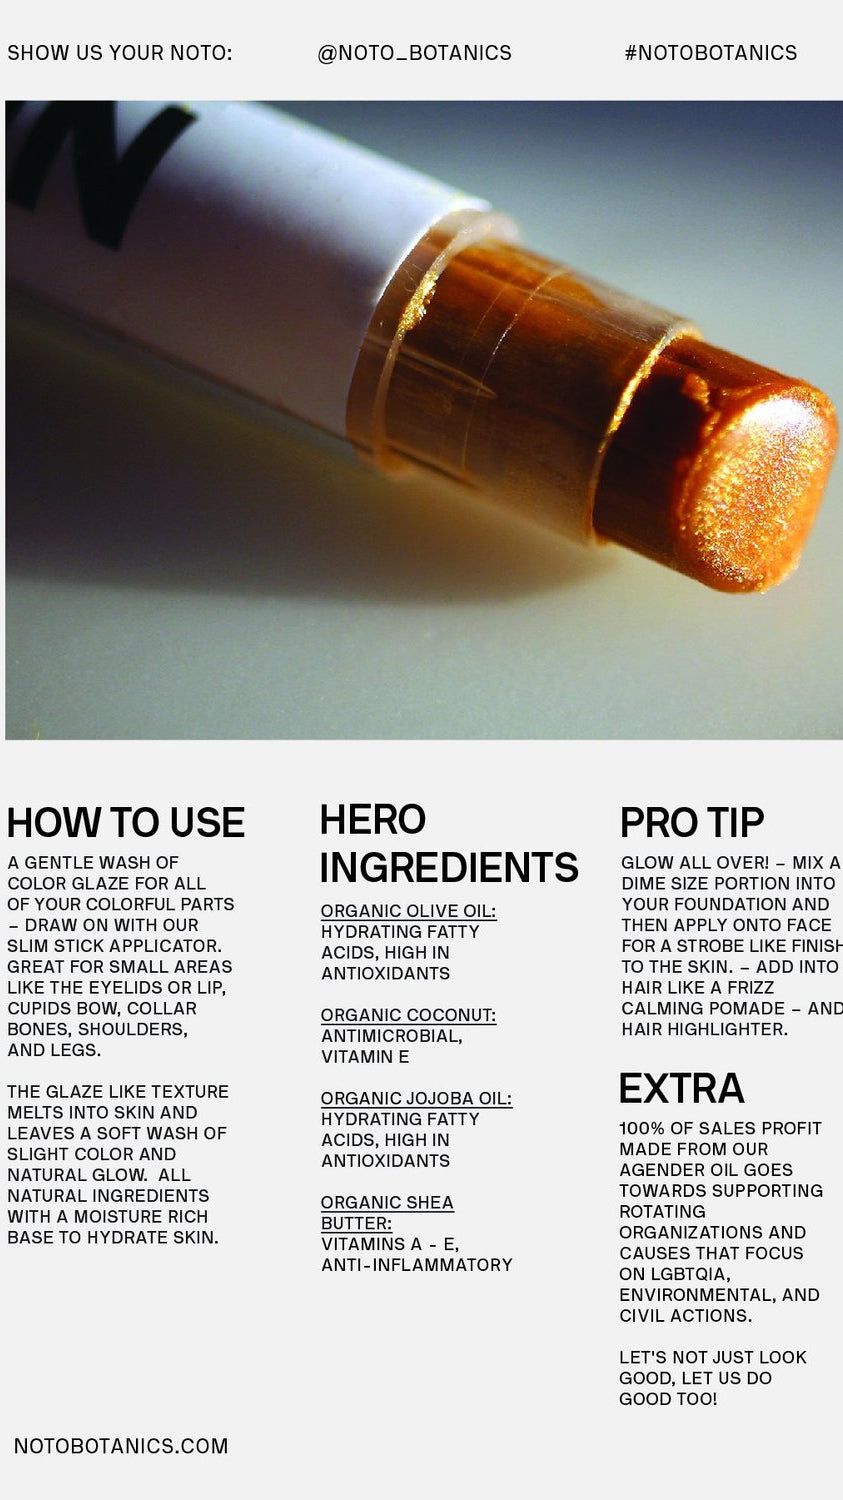 NOTO Botanics Gold Glow Stick Ingredients